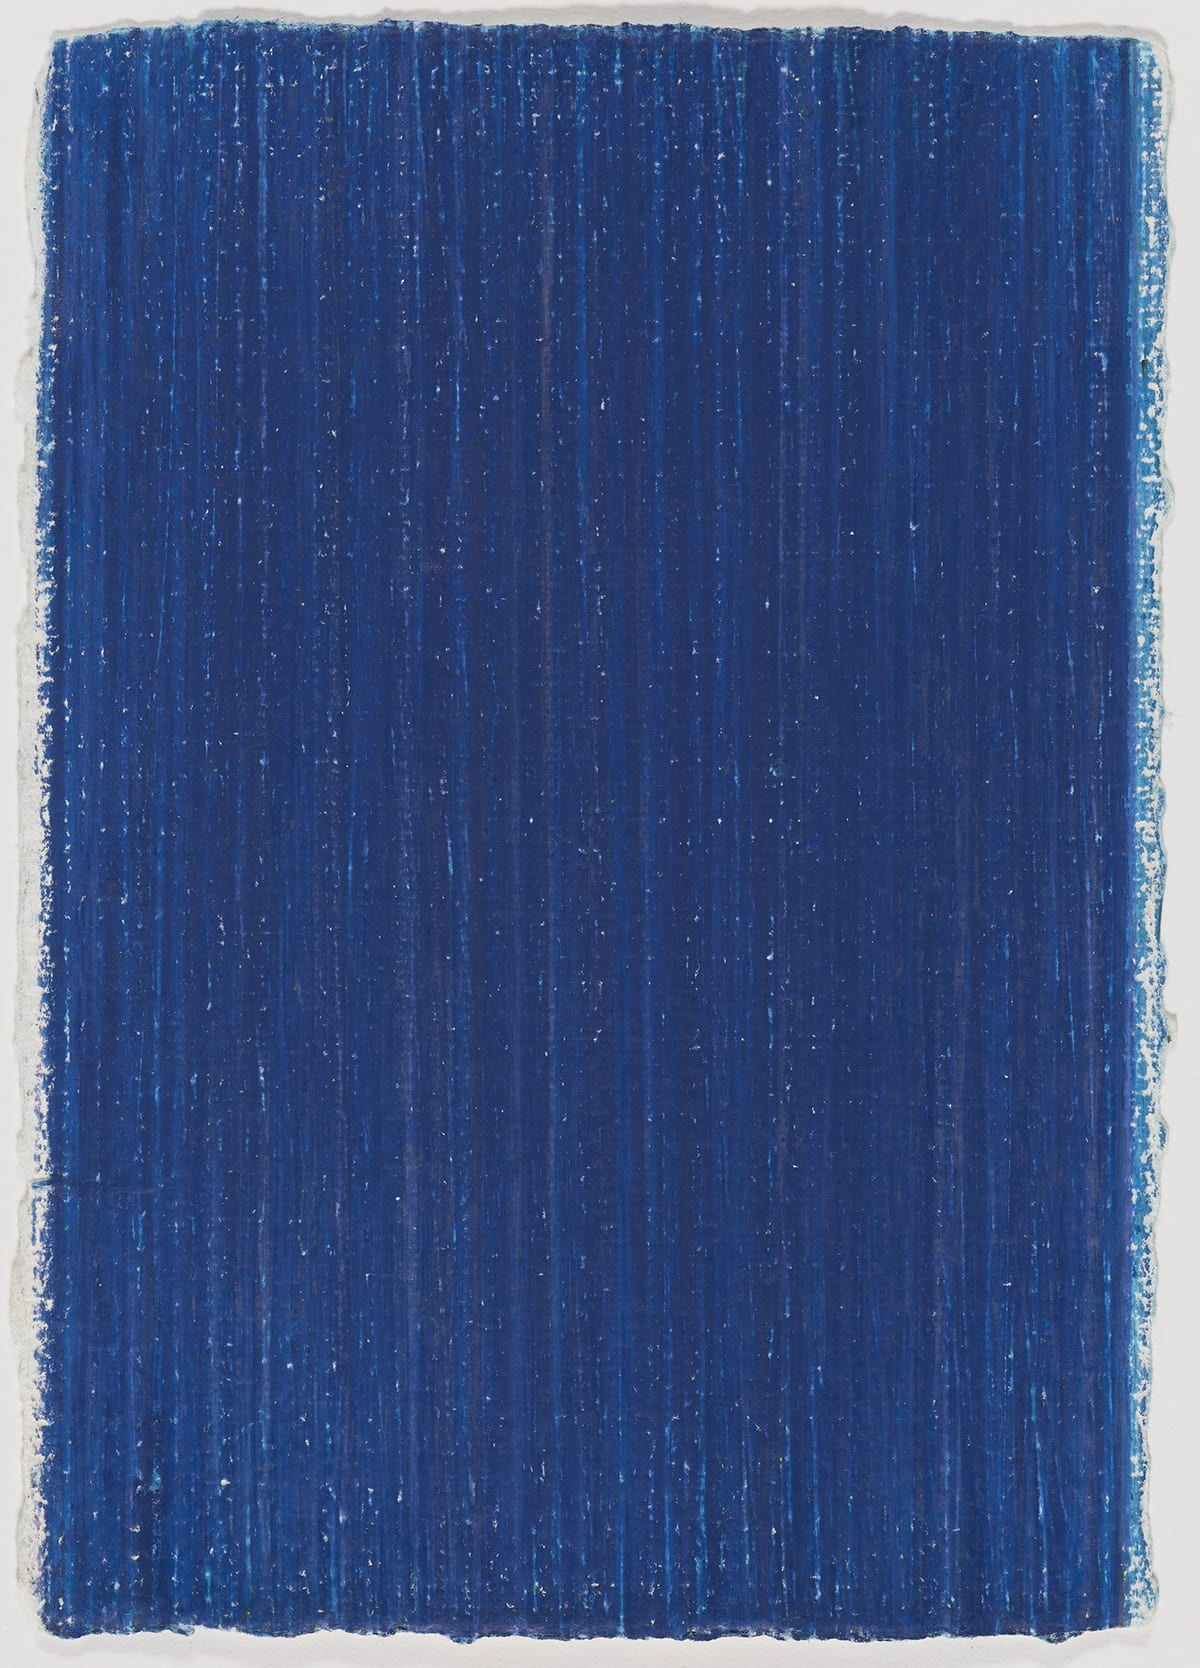 Prussian Blue, Vincent Hamel, 11 7/8 x 8 ½ inches, wax crayon on handmade paper. A vertical rectangular work composed entirely of a field of deep blue. Vertical lines create texture in the shape of variegated shades of deep blues with flecks and streaks of white throughout. The edges of the work are uneven and the nature of the crayon work reveals itself in scratchy, jagged borders